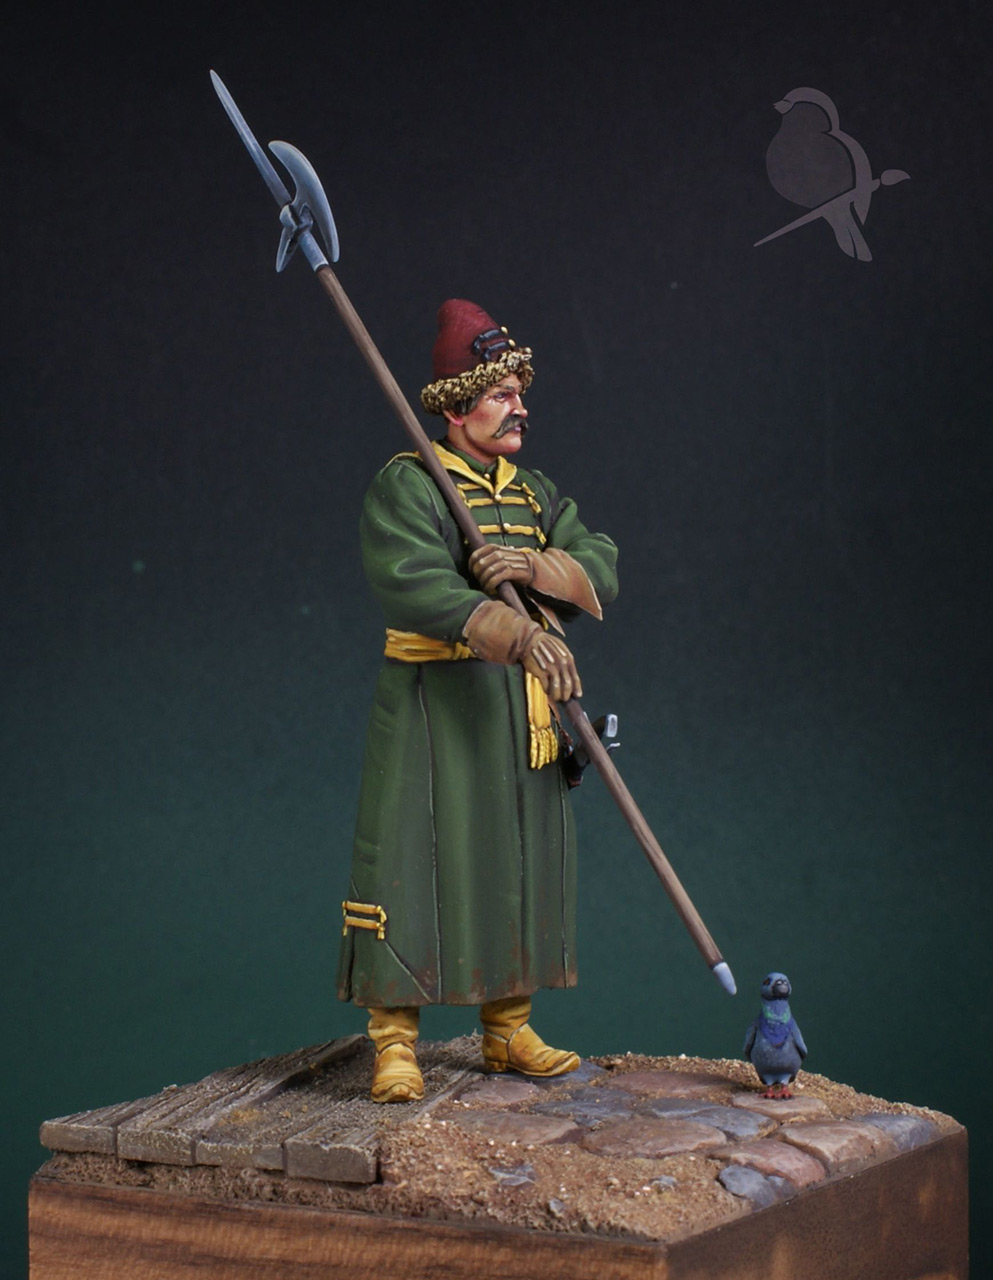 Dioramas and Vignettes: Two buddies, photo #5